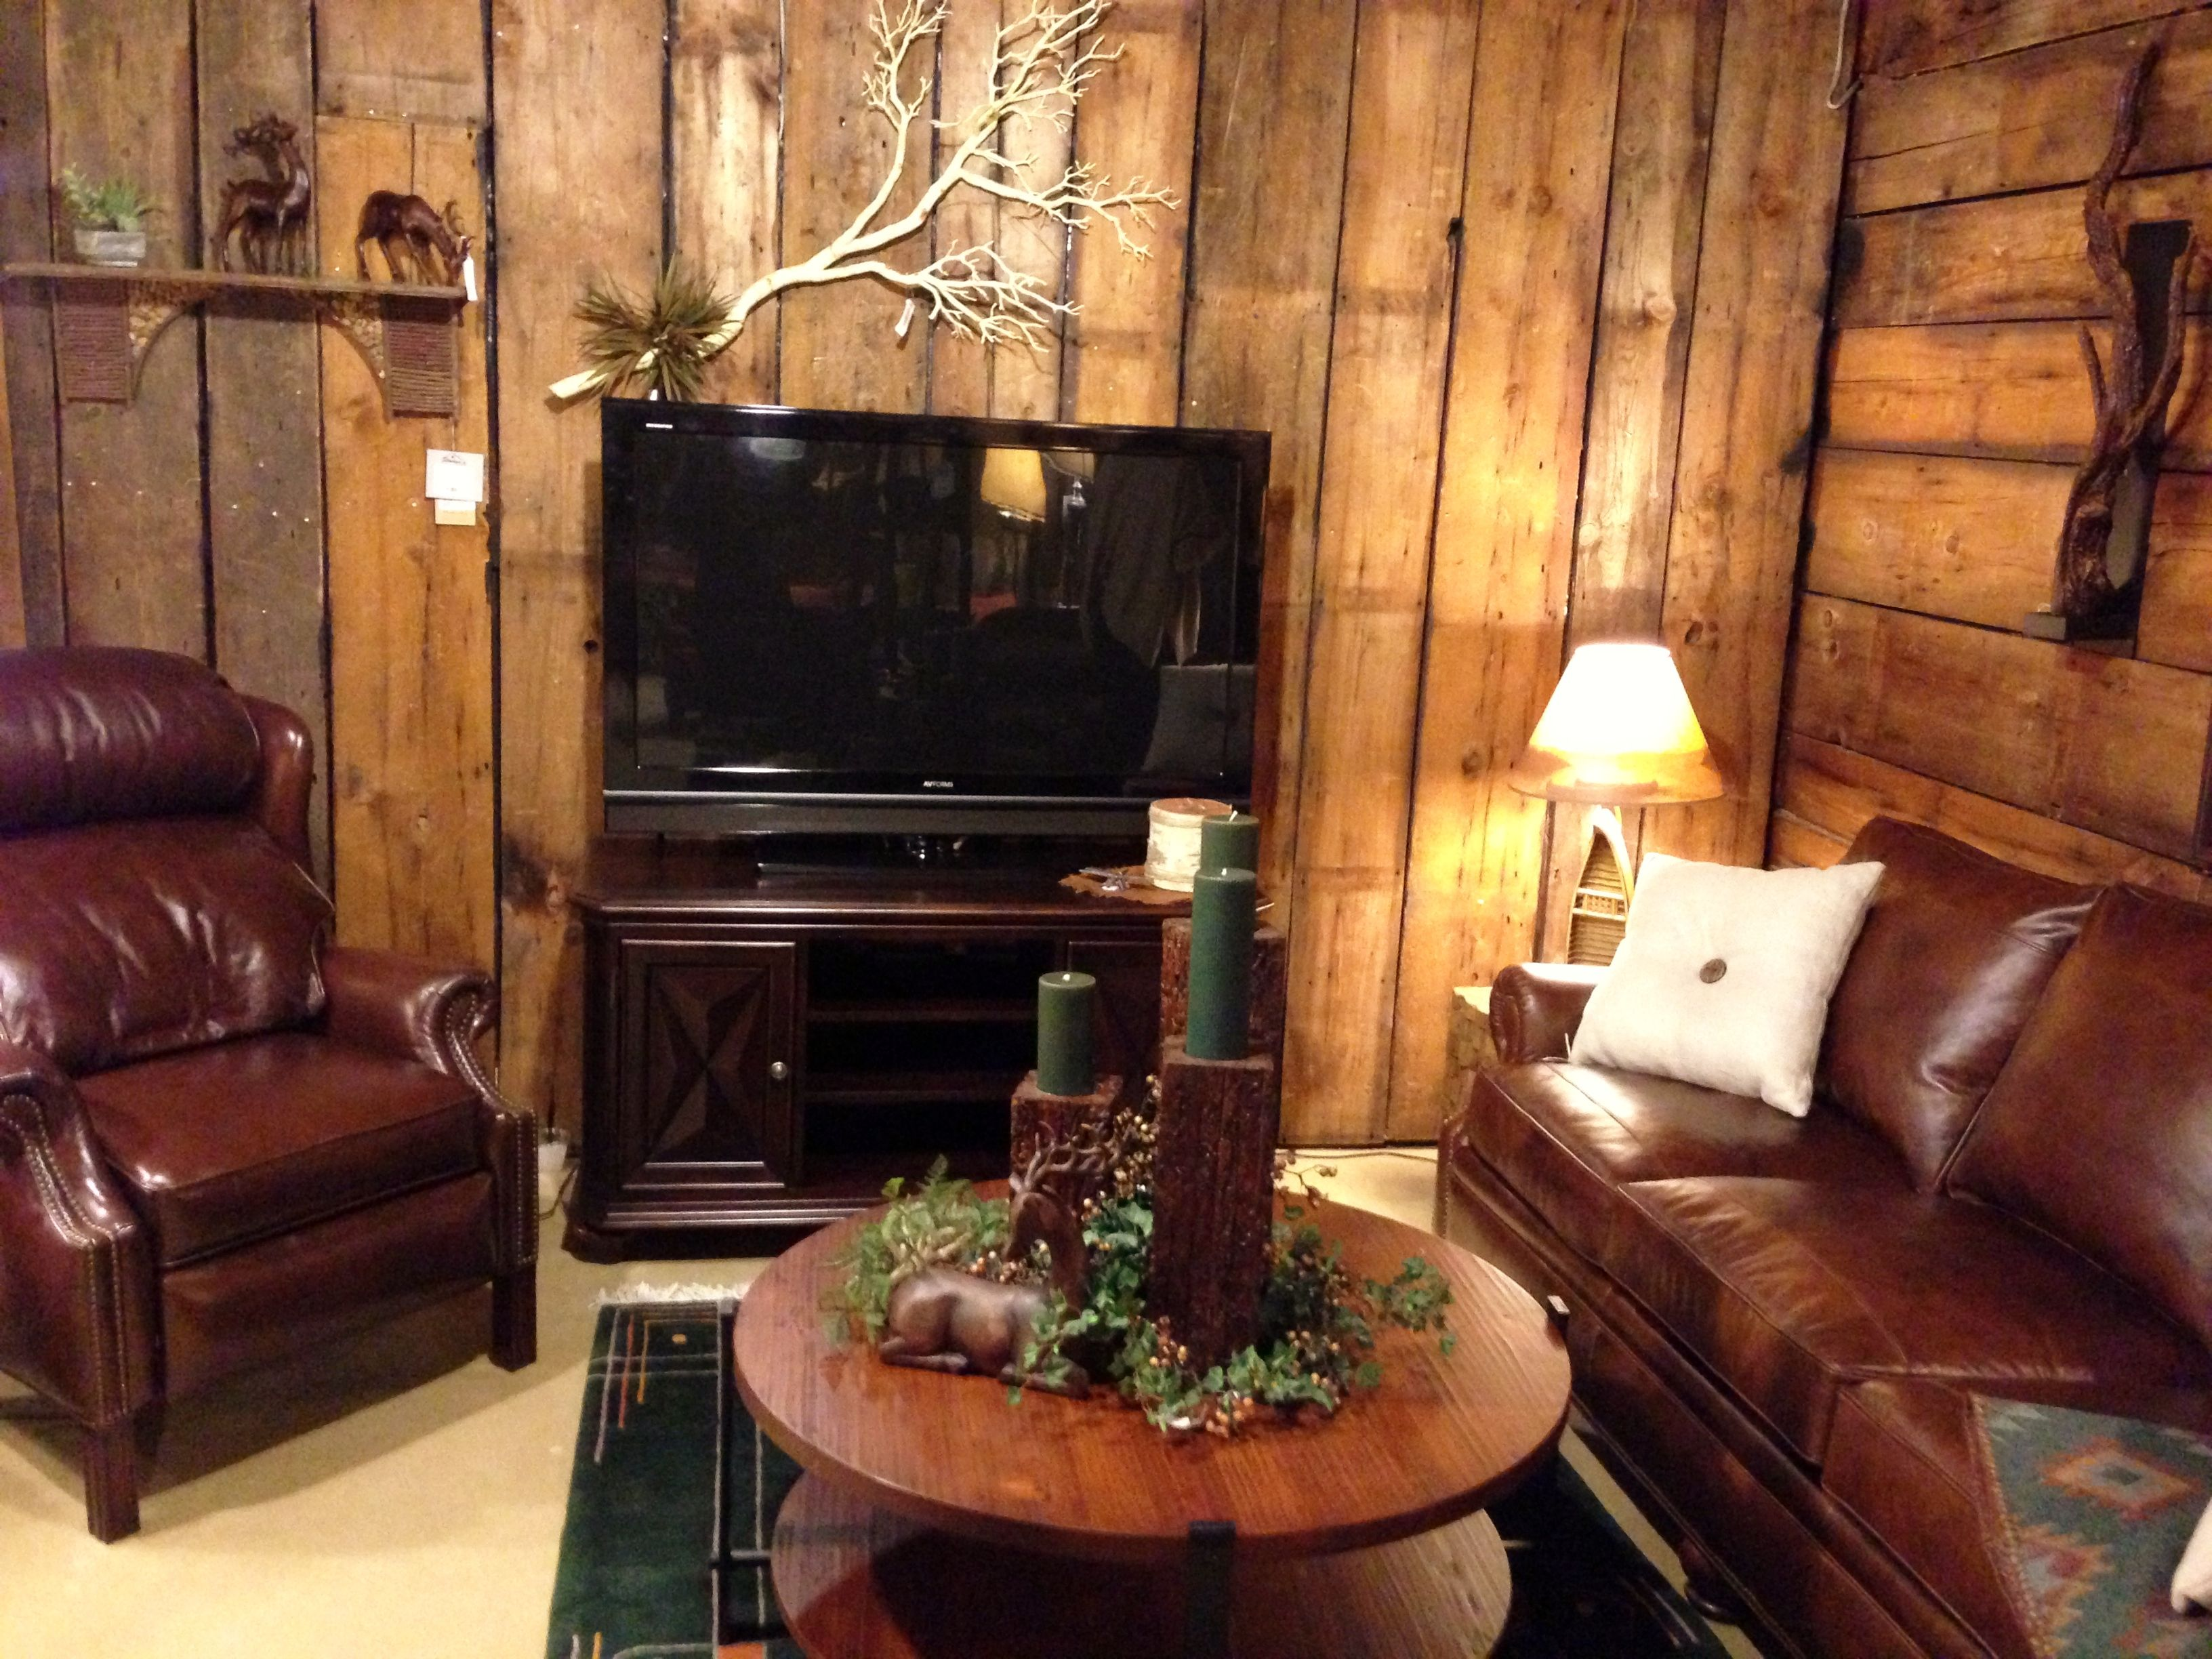 47 Old Fashioned How To Decorate Living Room Ideas Living Room